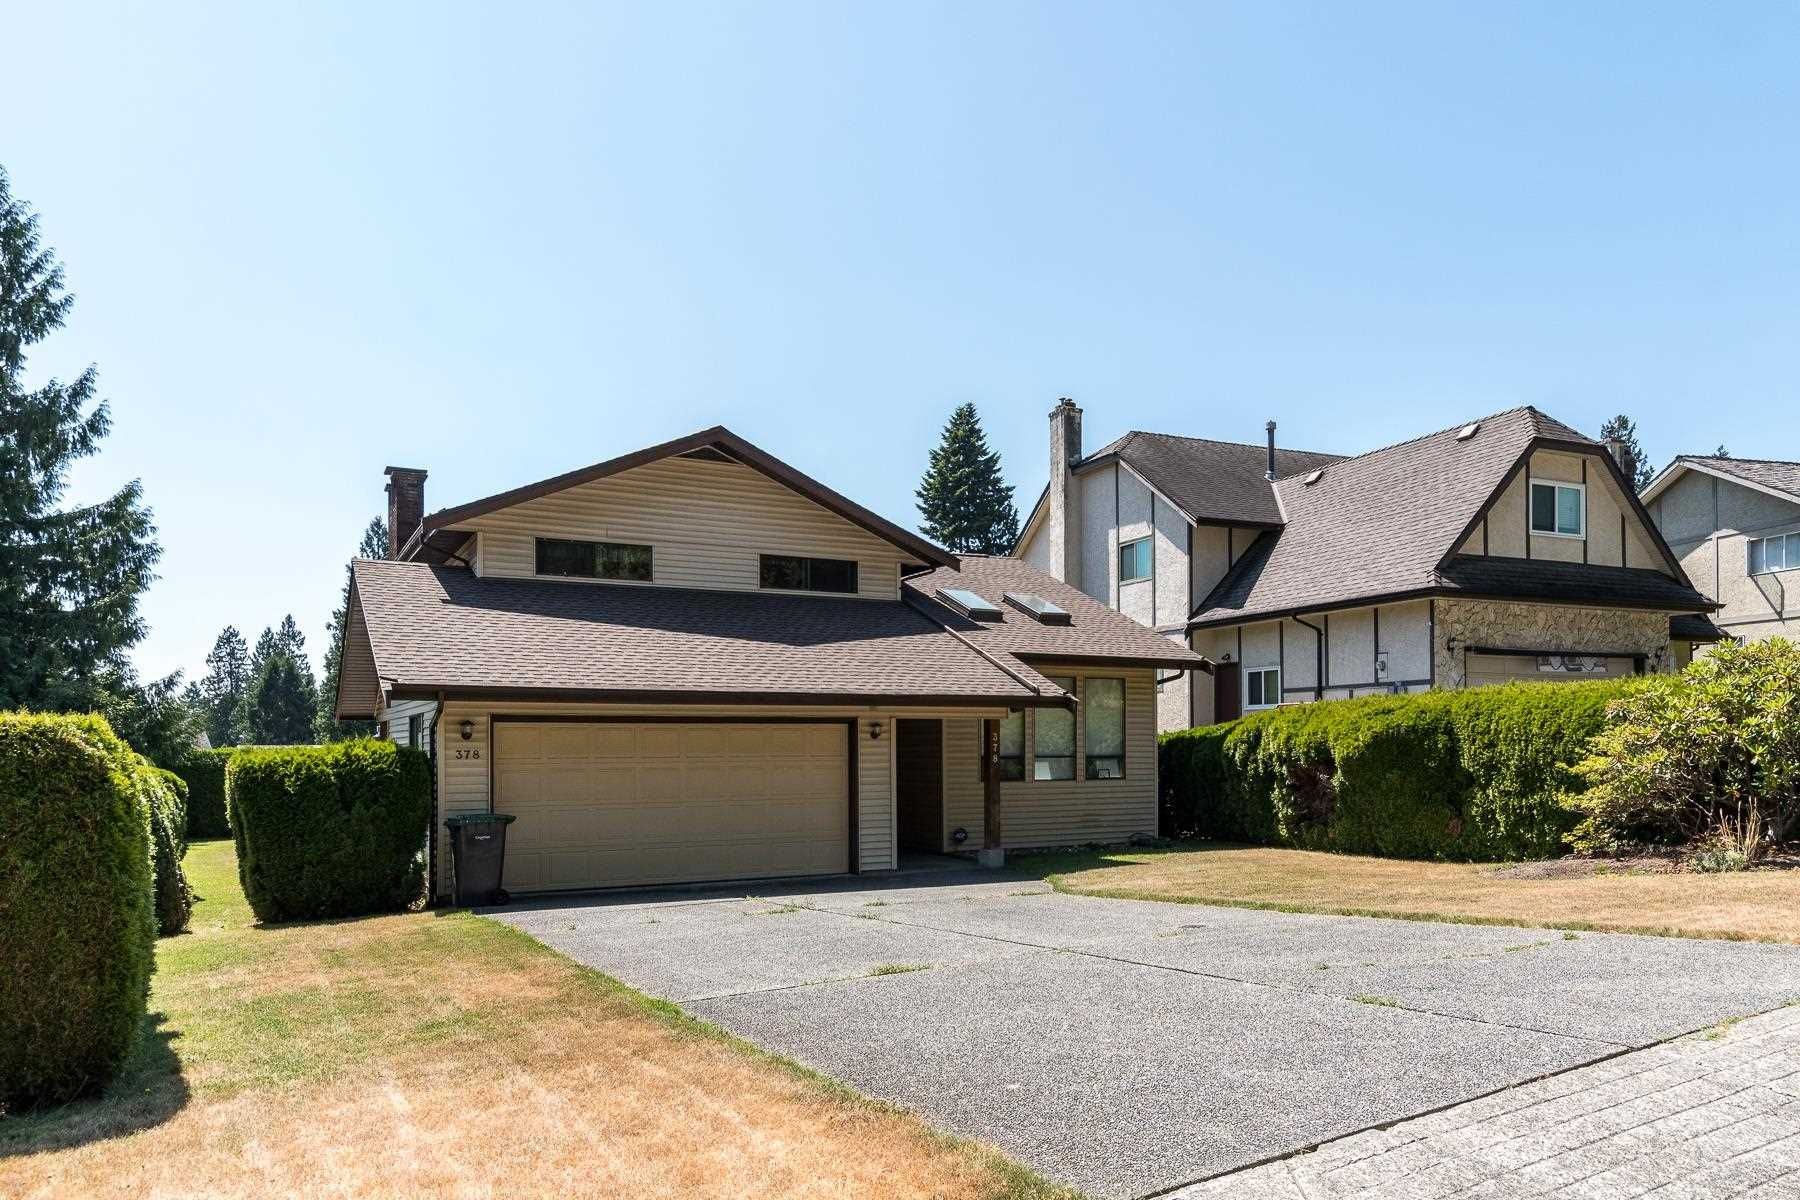 """Photo 2: Photos: 378 BALFOUR Drive in Coquitlam: Coquitlam East House for sale in """"DARTMOOR HEIGHTS"""" : MLS®# R2600428"""